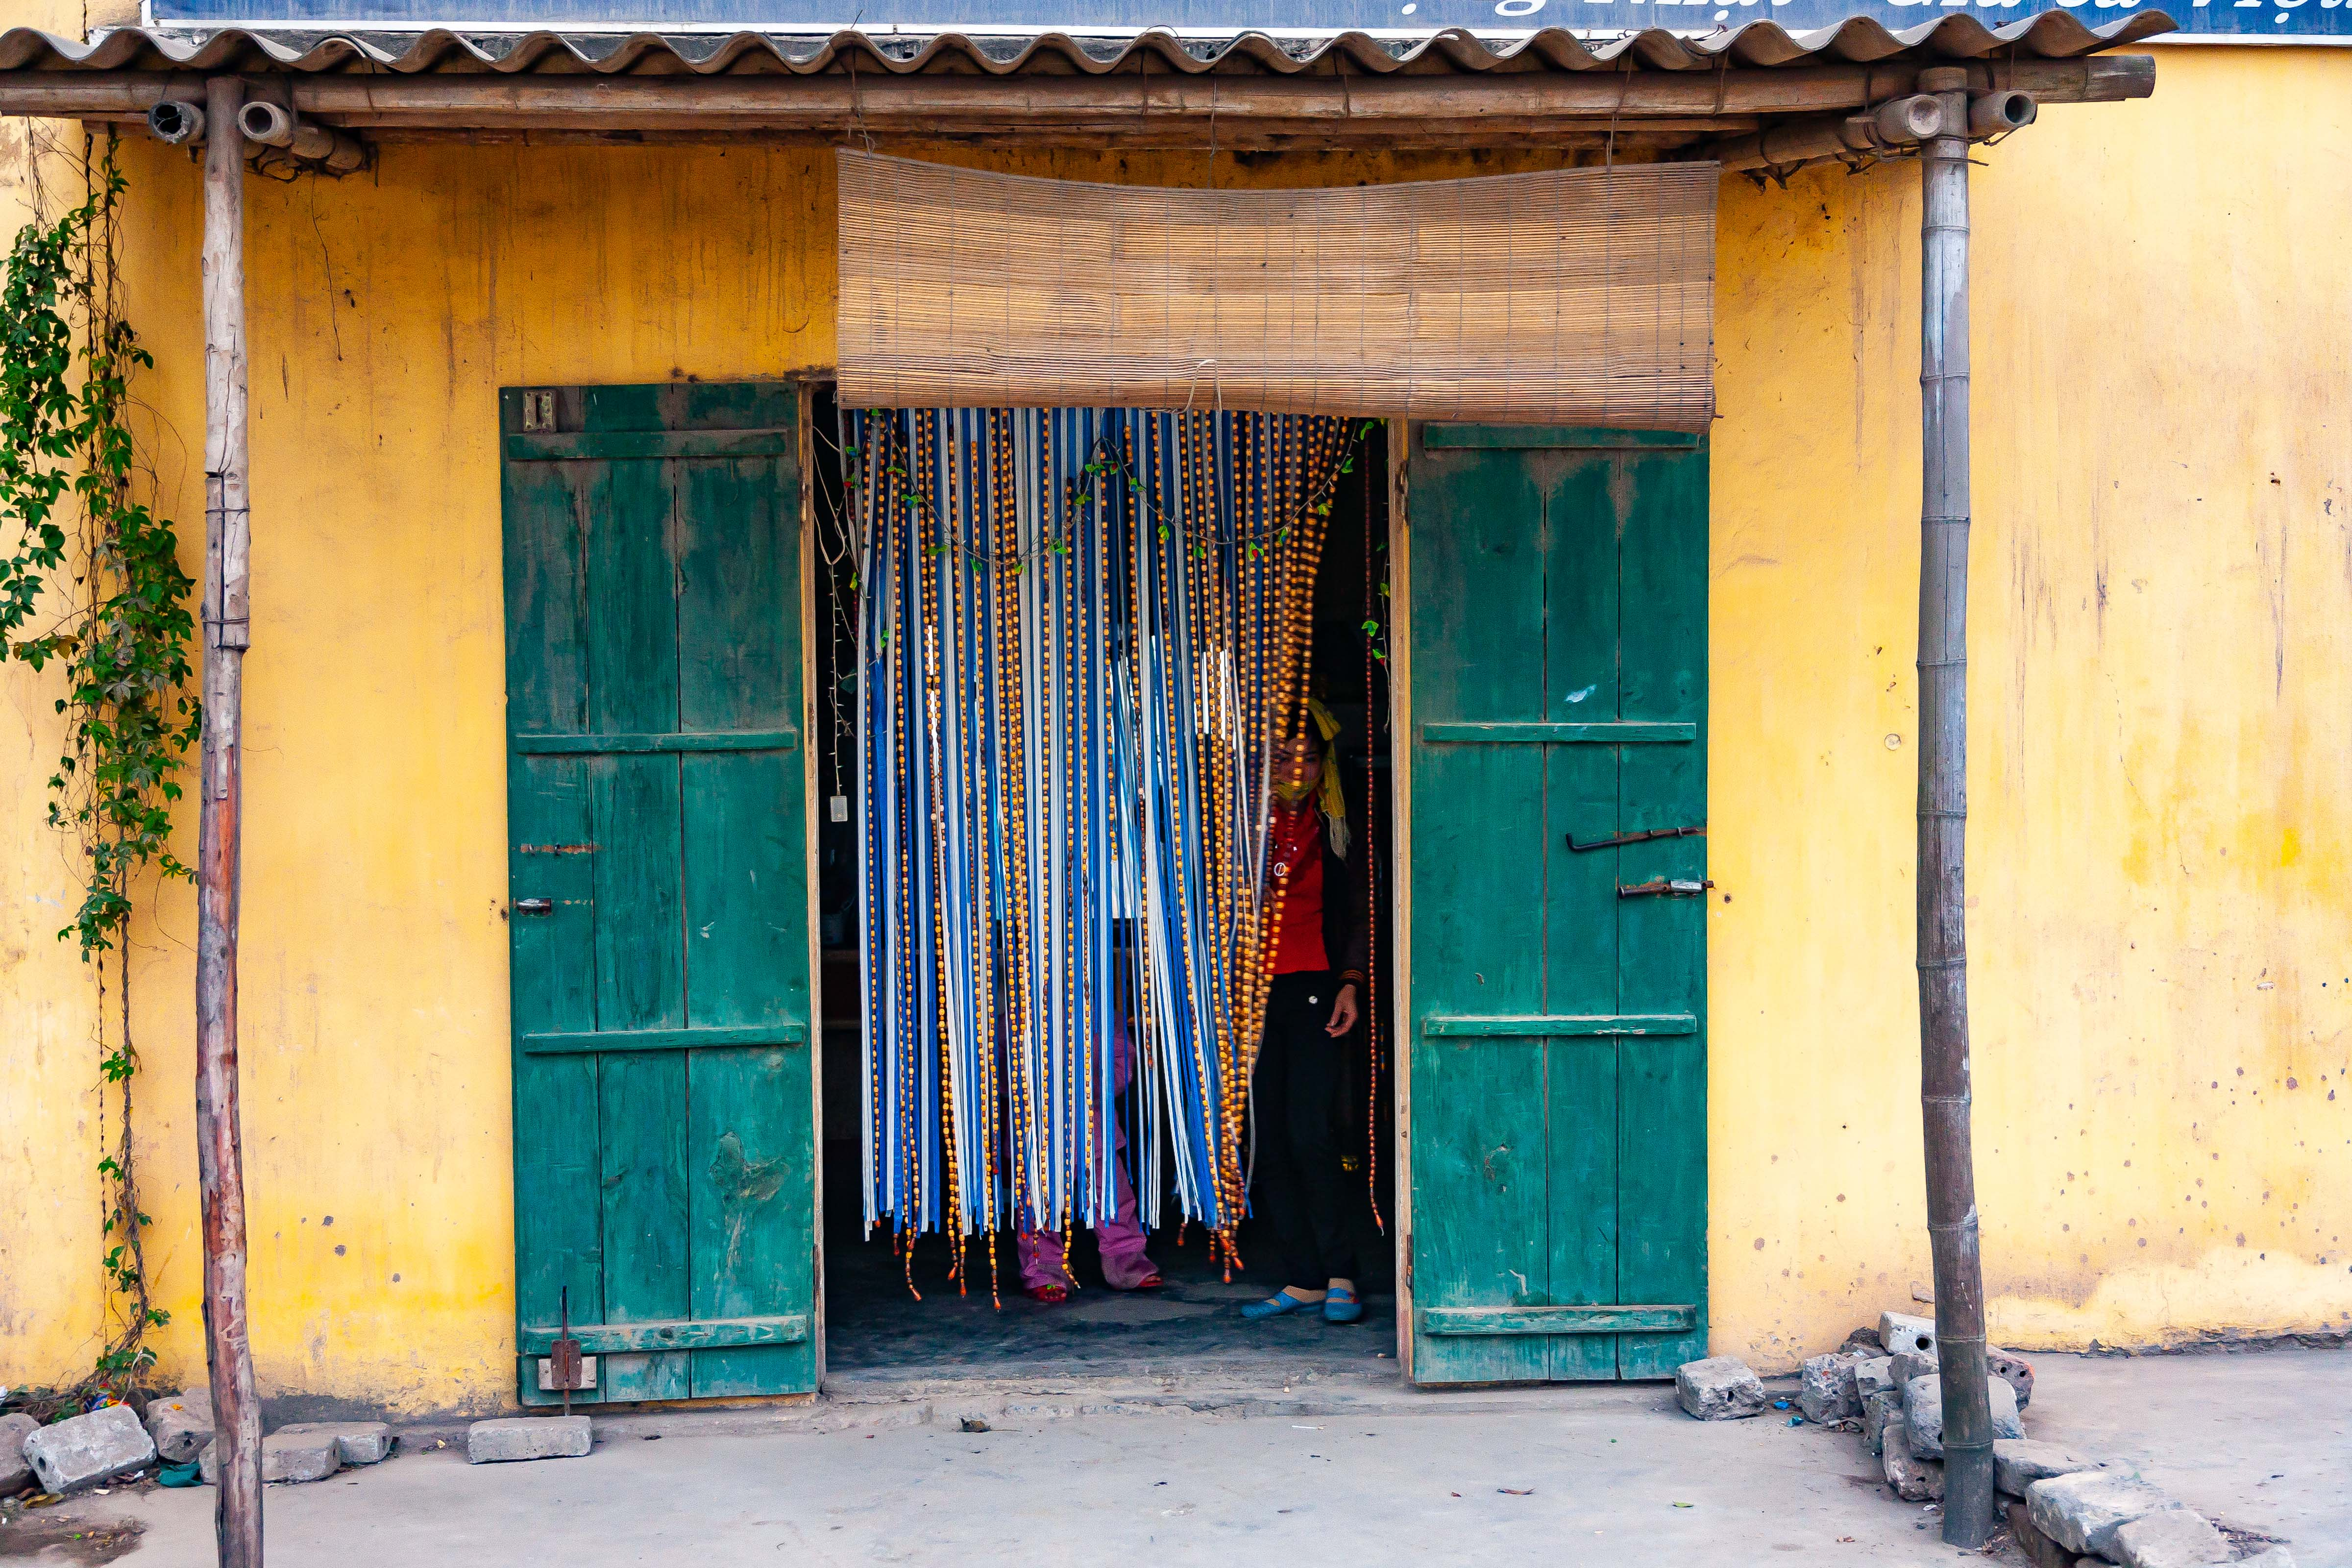 Vietnam, Nam Dinh Prov, Store Front, 2010, IMG 3430